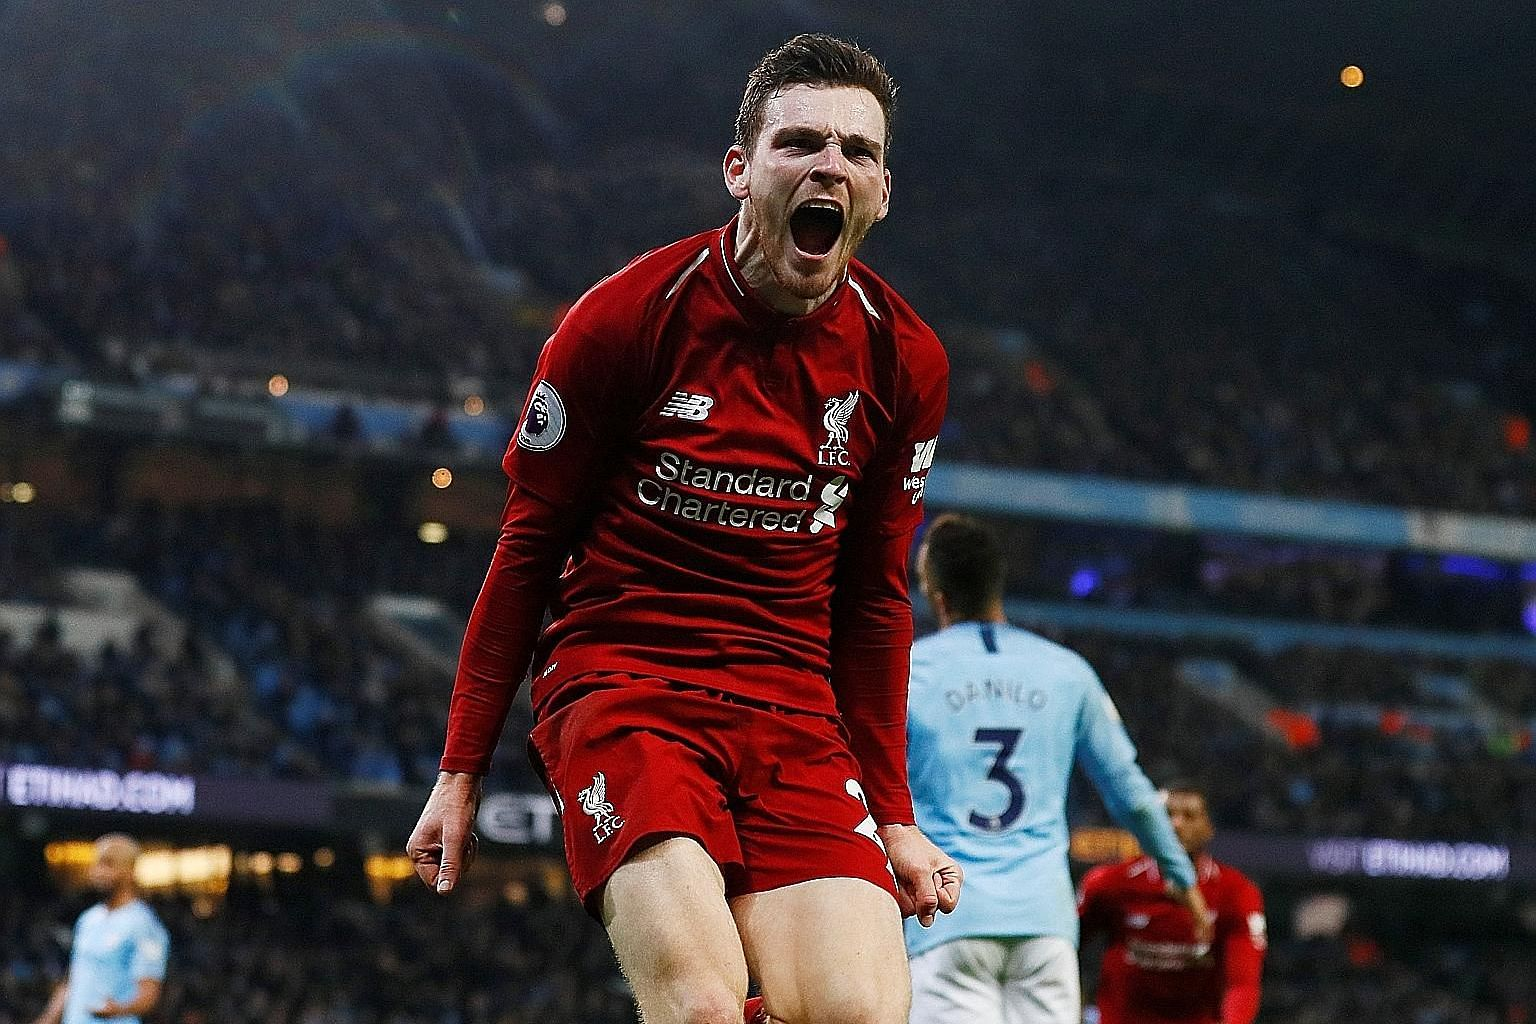 Andy Robertson has committed his next five years to Liverpool after he was awarded a new deal by the club. The Scot has been a key cog in the Reds' defence, while also contributing four assists at the other end of the pitch.